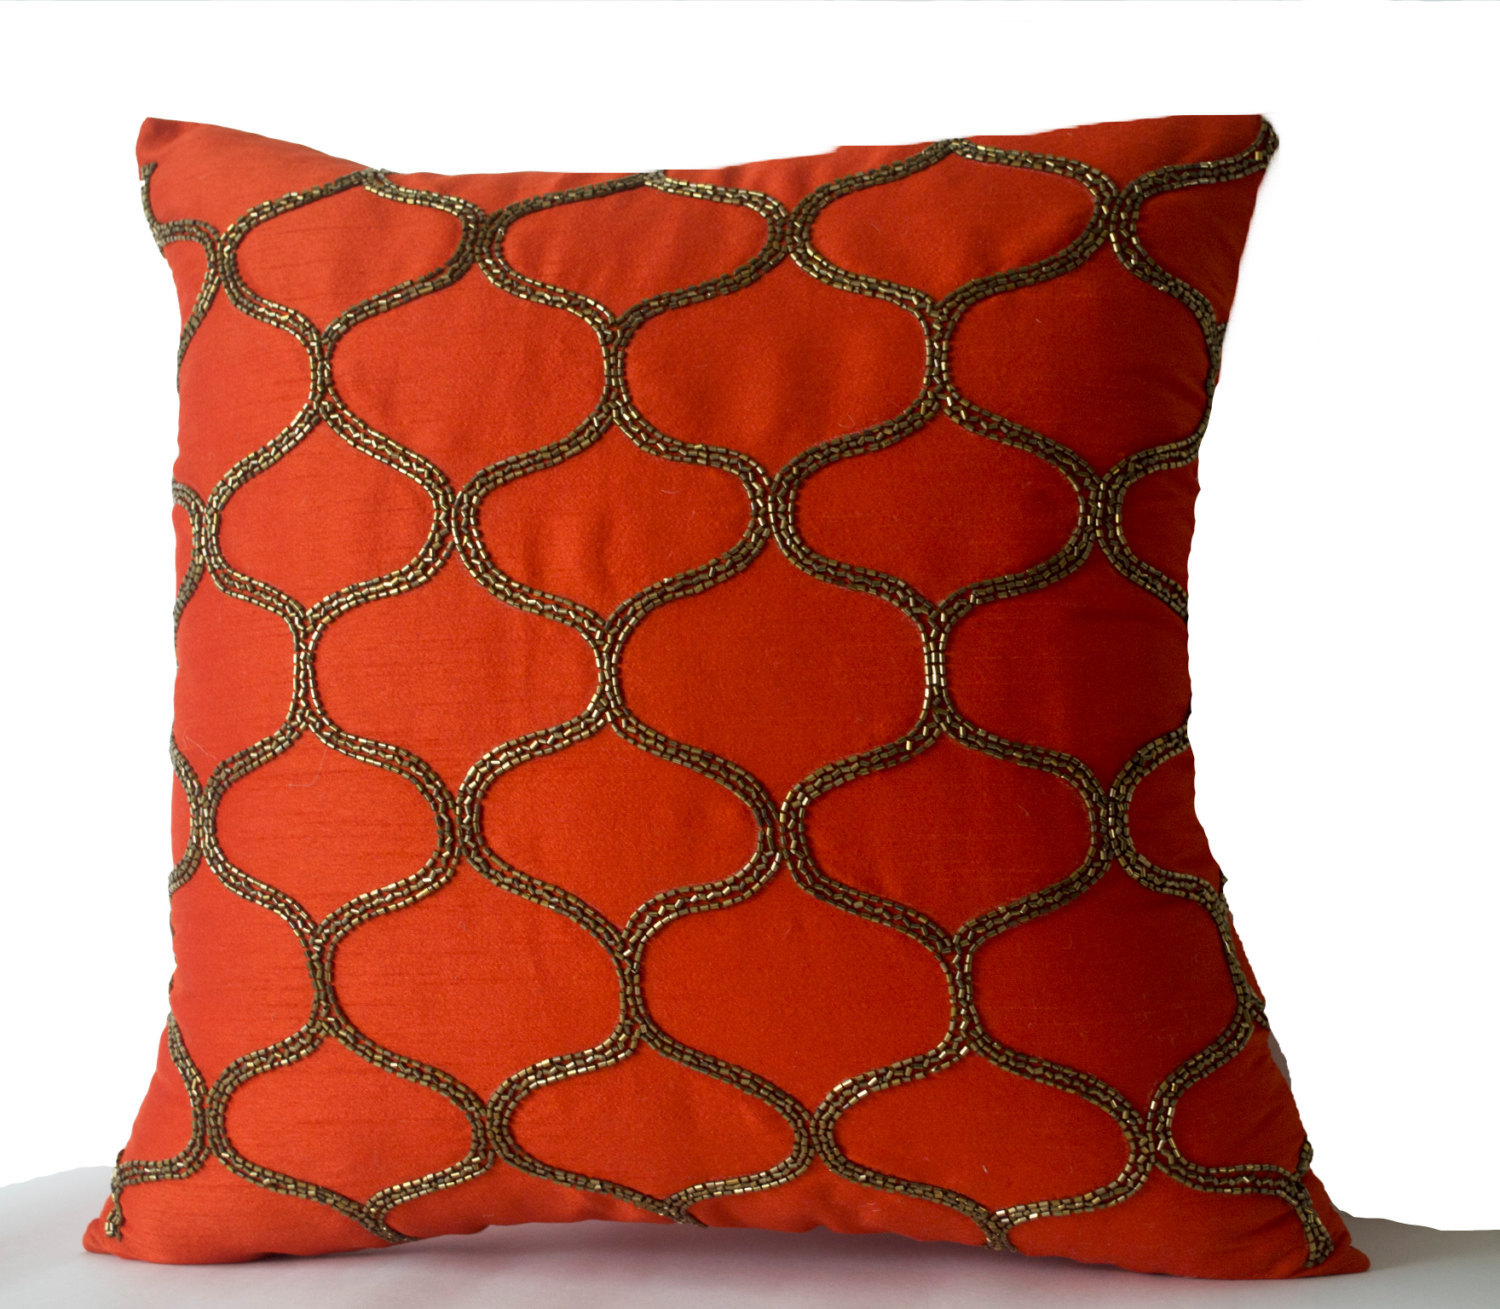 Gold Brown Throw Pillows : Orange Decorative Pillow Orange Silk Pillow Orange Brown Gold Throw Pillow - Pillows